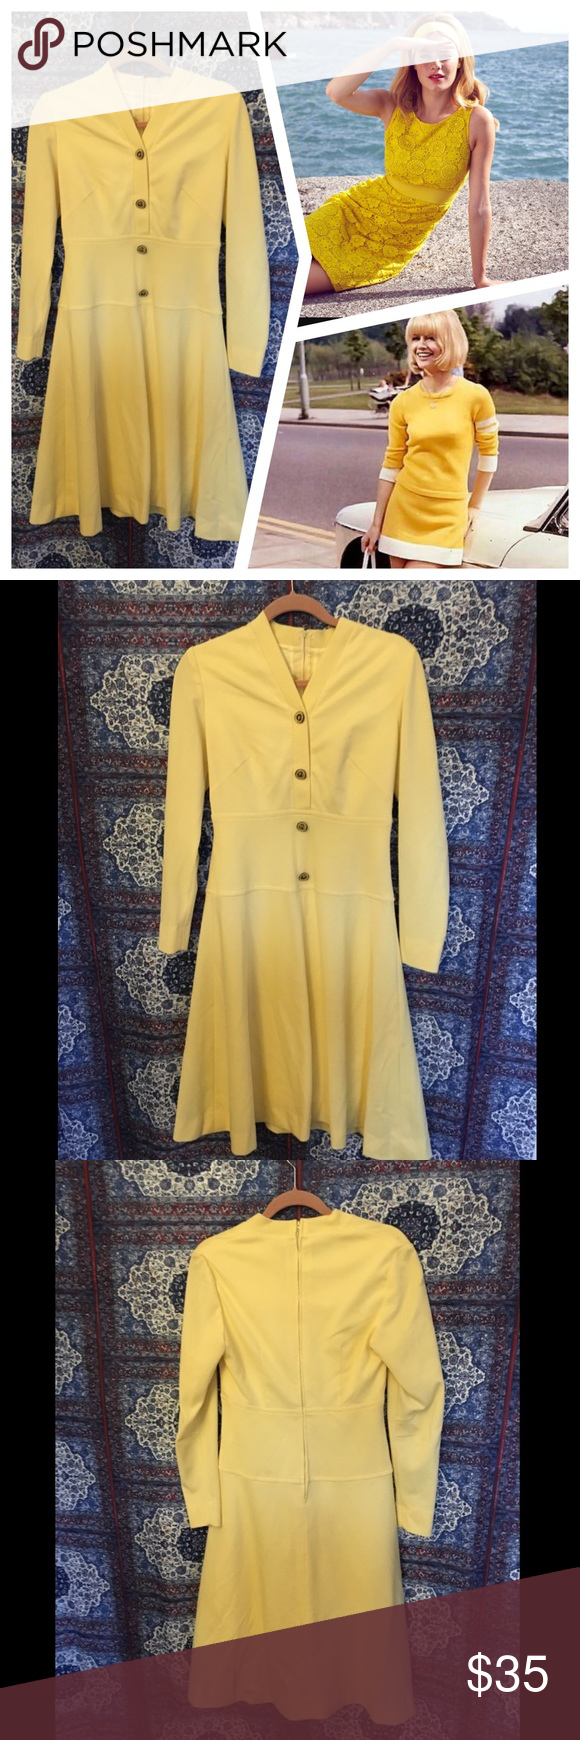 """🌞Vintage🌞 Mod Yellow Dress This is a super adorable yellow vintage mod dress. The buttons on the front are original-metal and enamel. The dress is a thick knit material and has a back zipper. Gorgeous a-line shape with sleeves. The dress is lined including the skirt. Bust fits up to 36"""" and waist fits up to 31"""". Would fit a size 6 to 8. Let me know if you have any questions! Vintage Dresses Long Sleeve"""